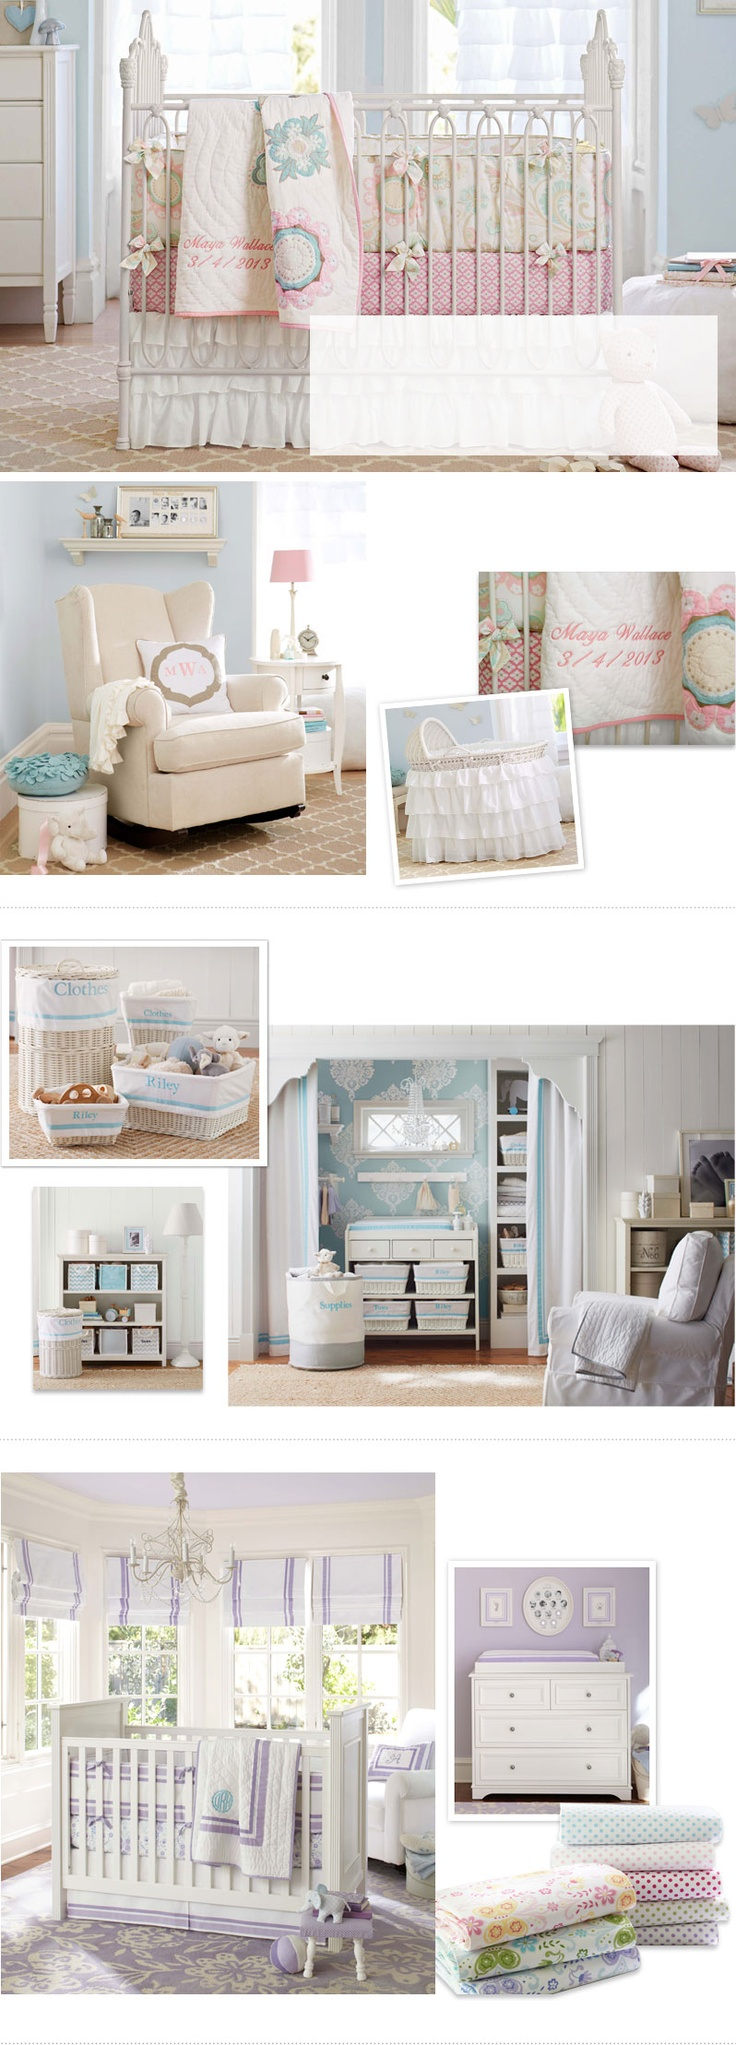 Pottery barn kids sleigh crib - Pottery Barn Kids Shares Nursery Ideas That Are Creative And Charming Find Baby Room Decorating Ideas And Design You Re A Girl S Nursery Room